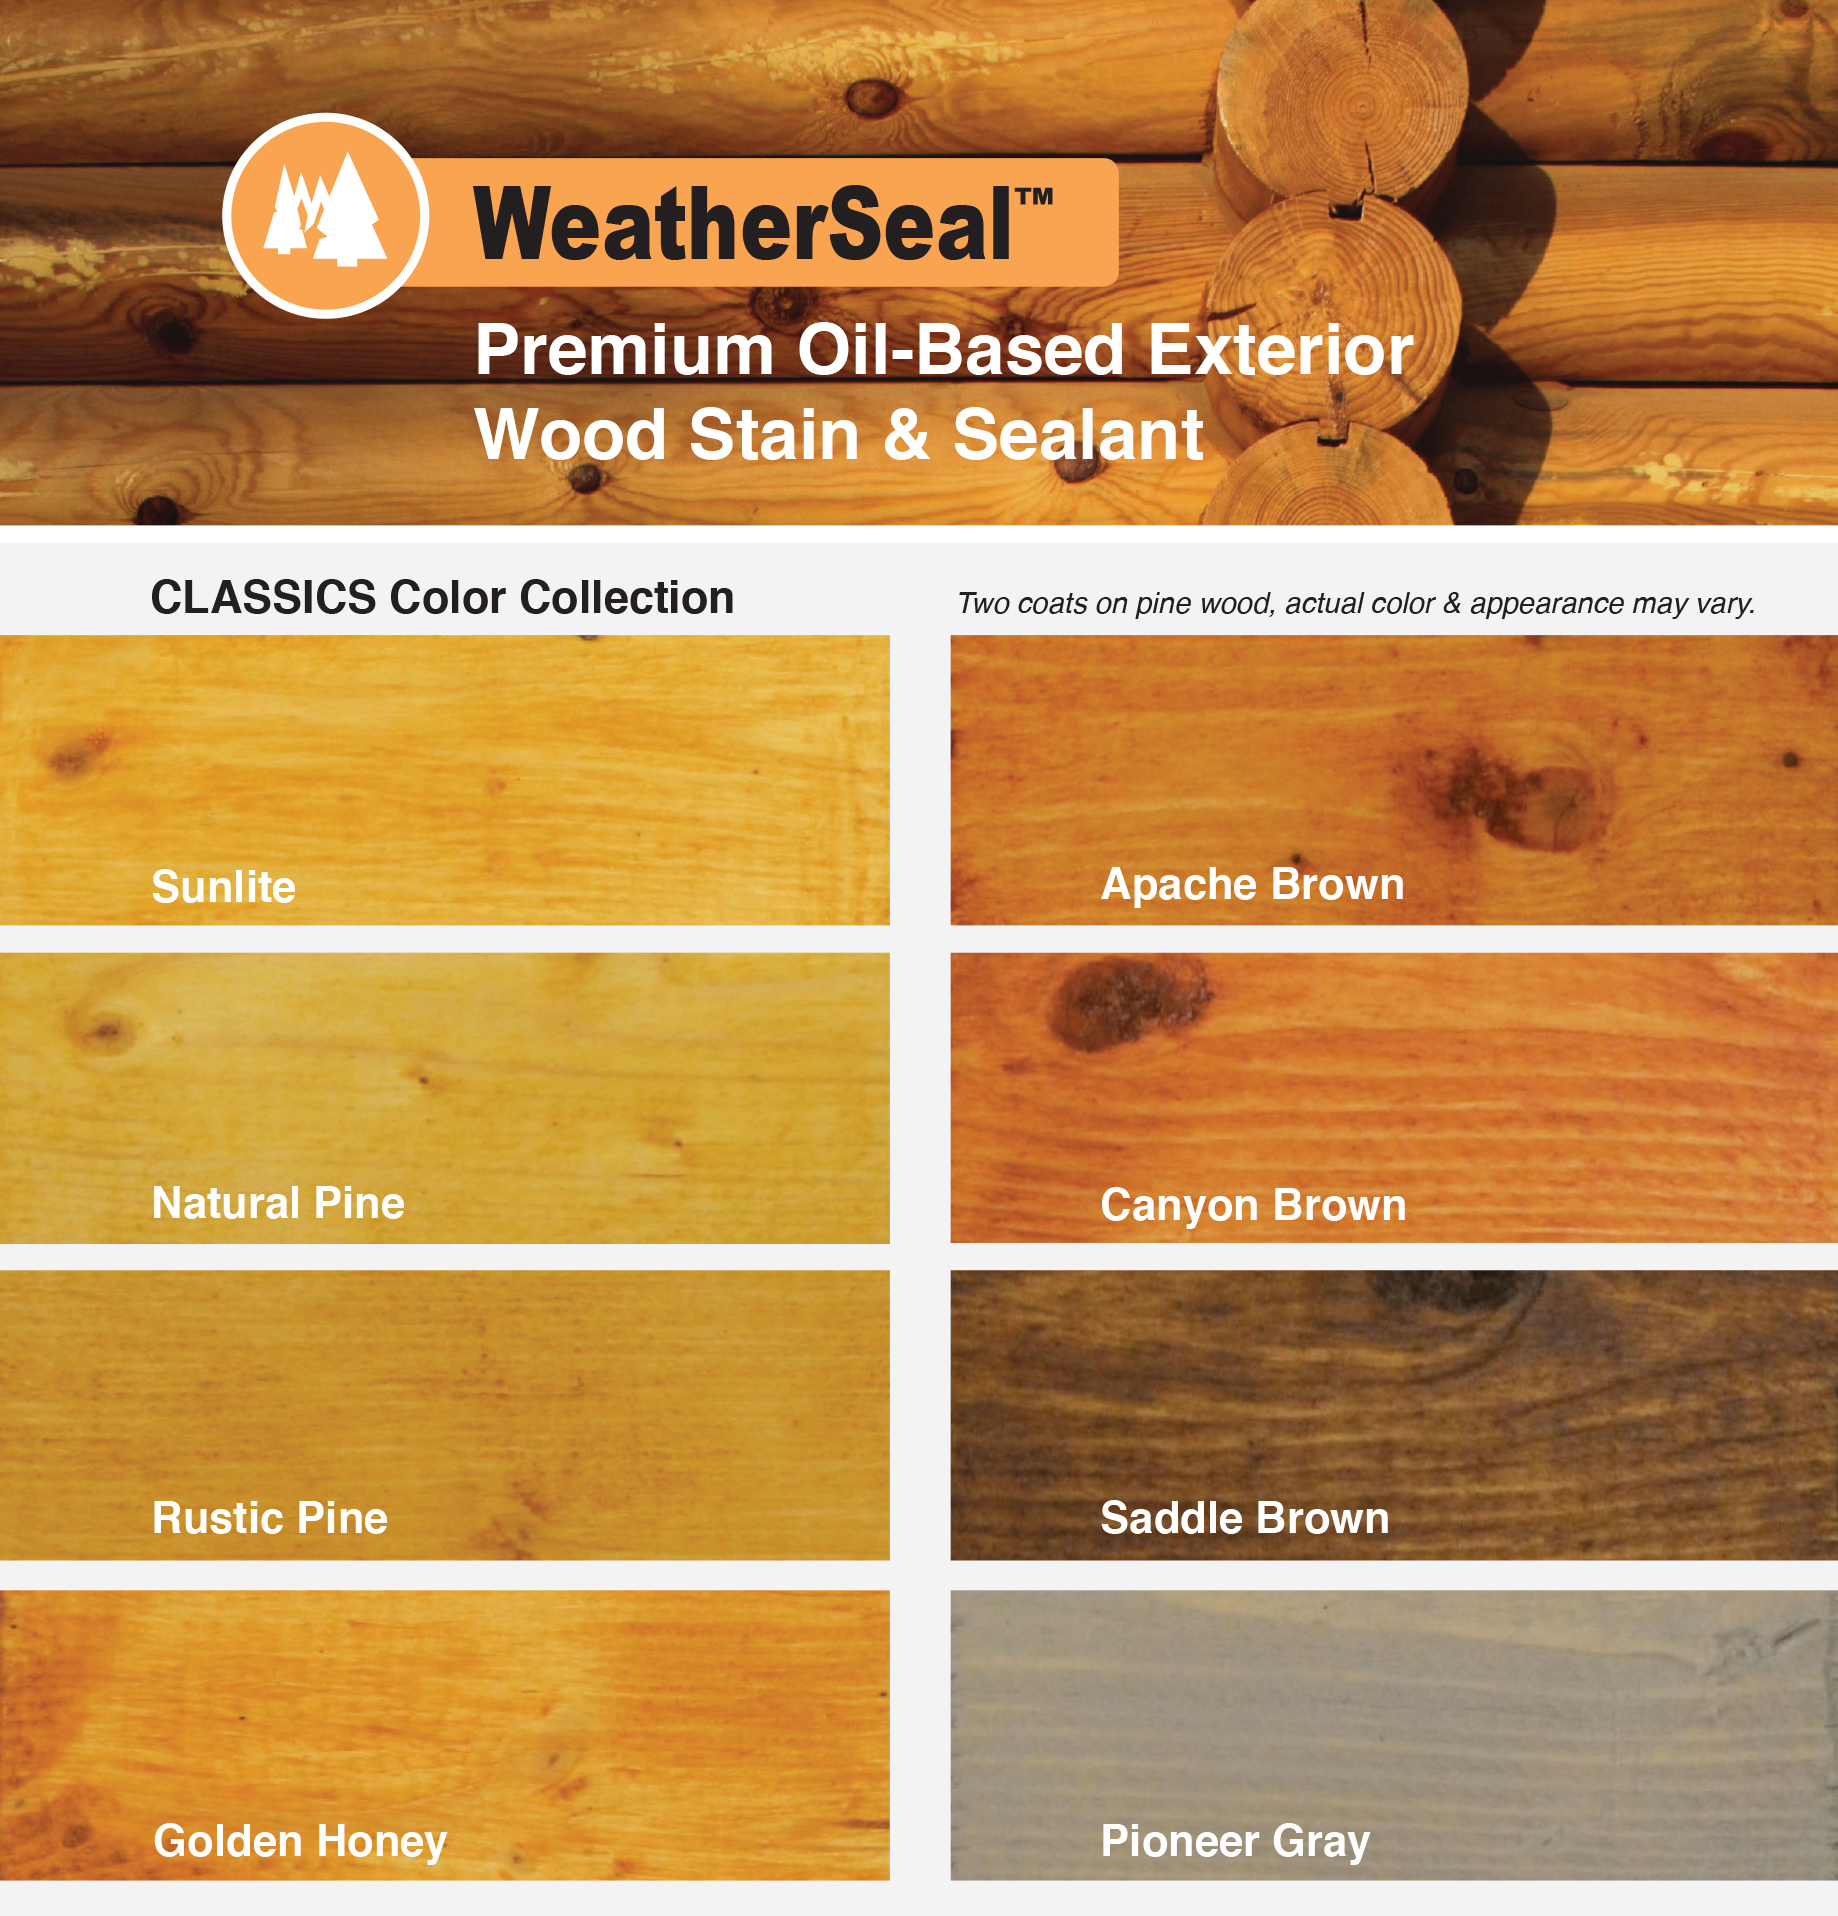 WeatherSeal Classics Color Collection